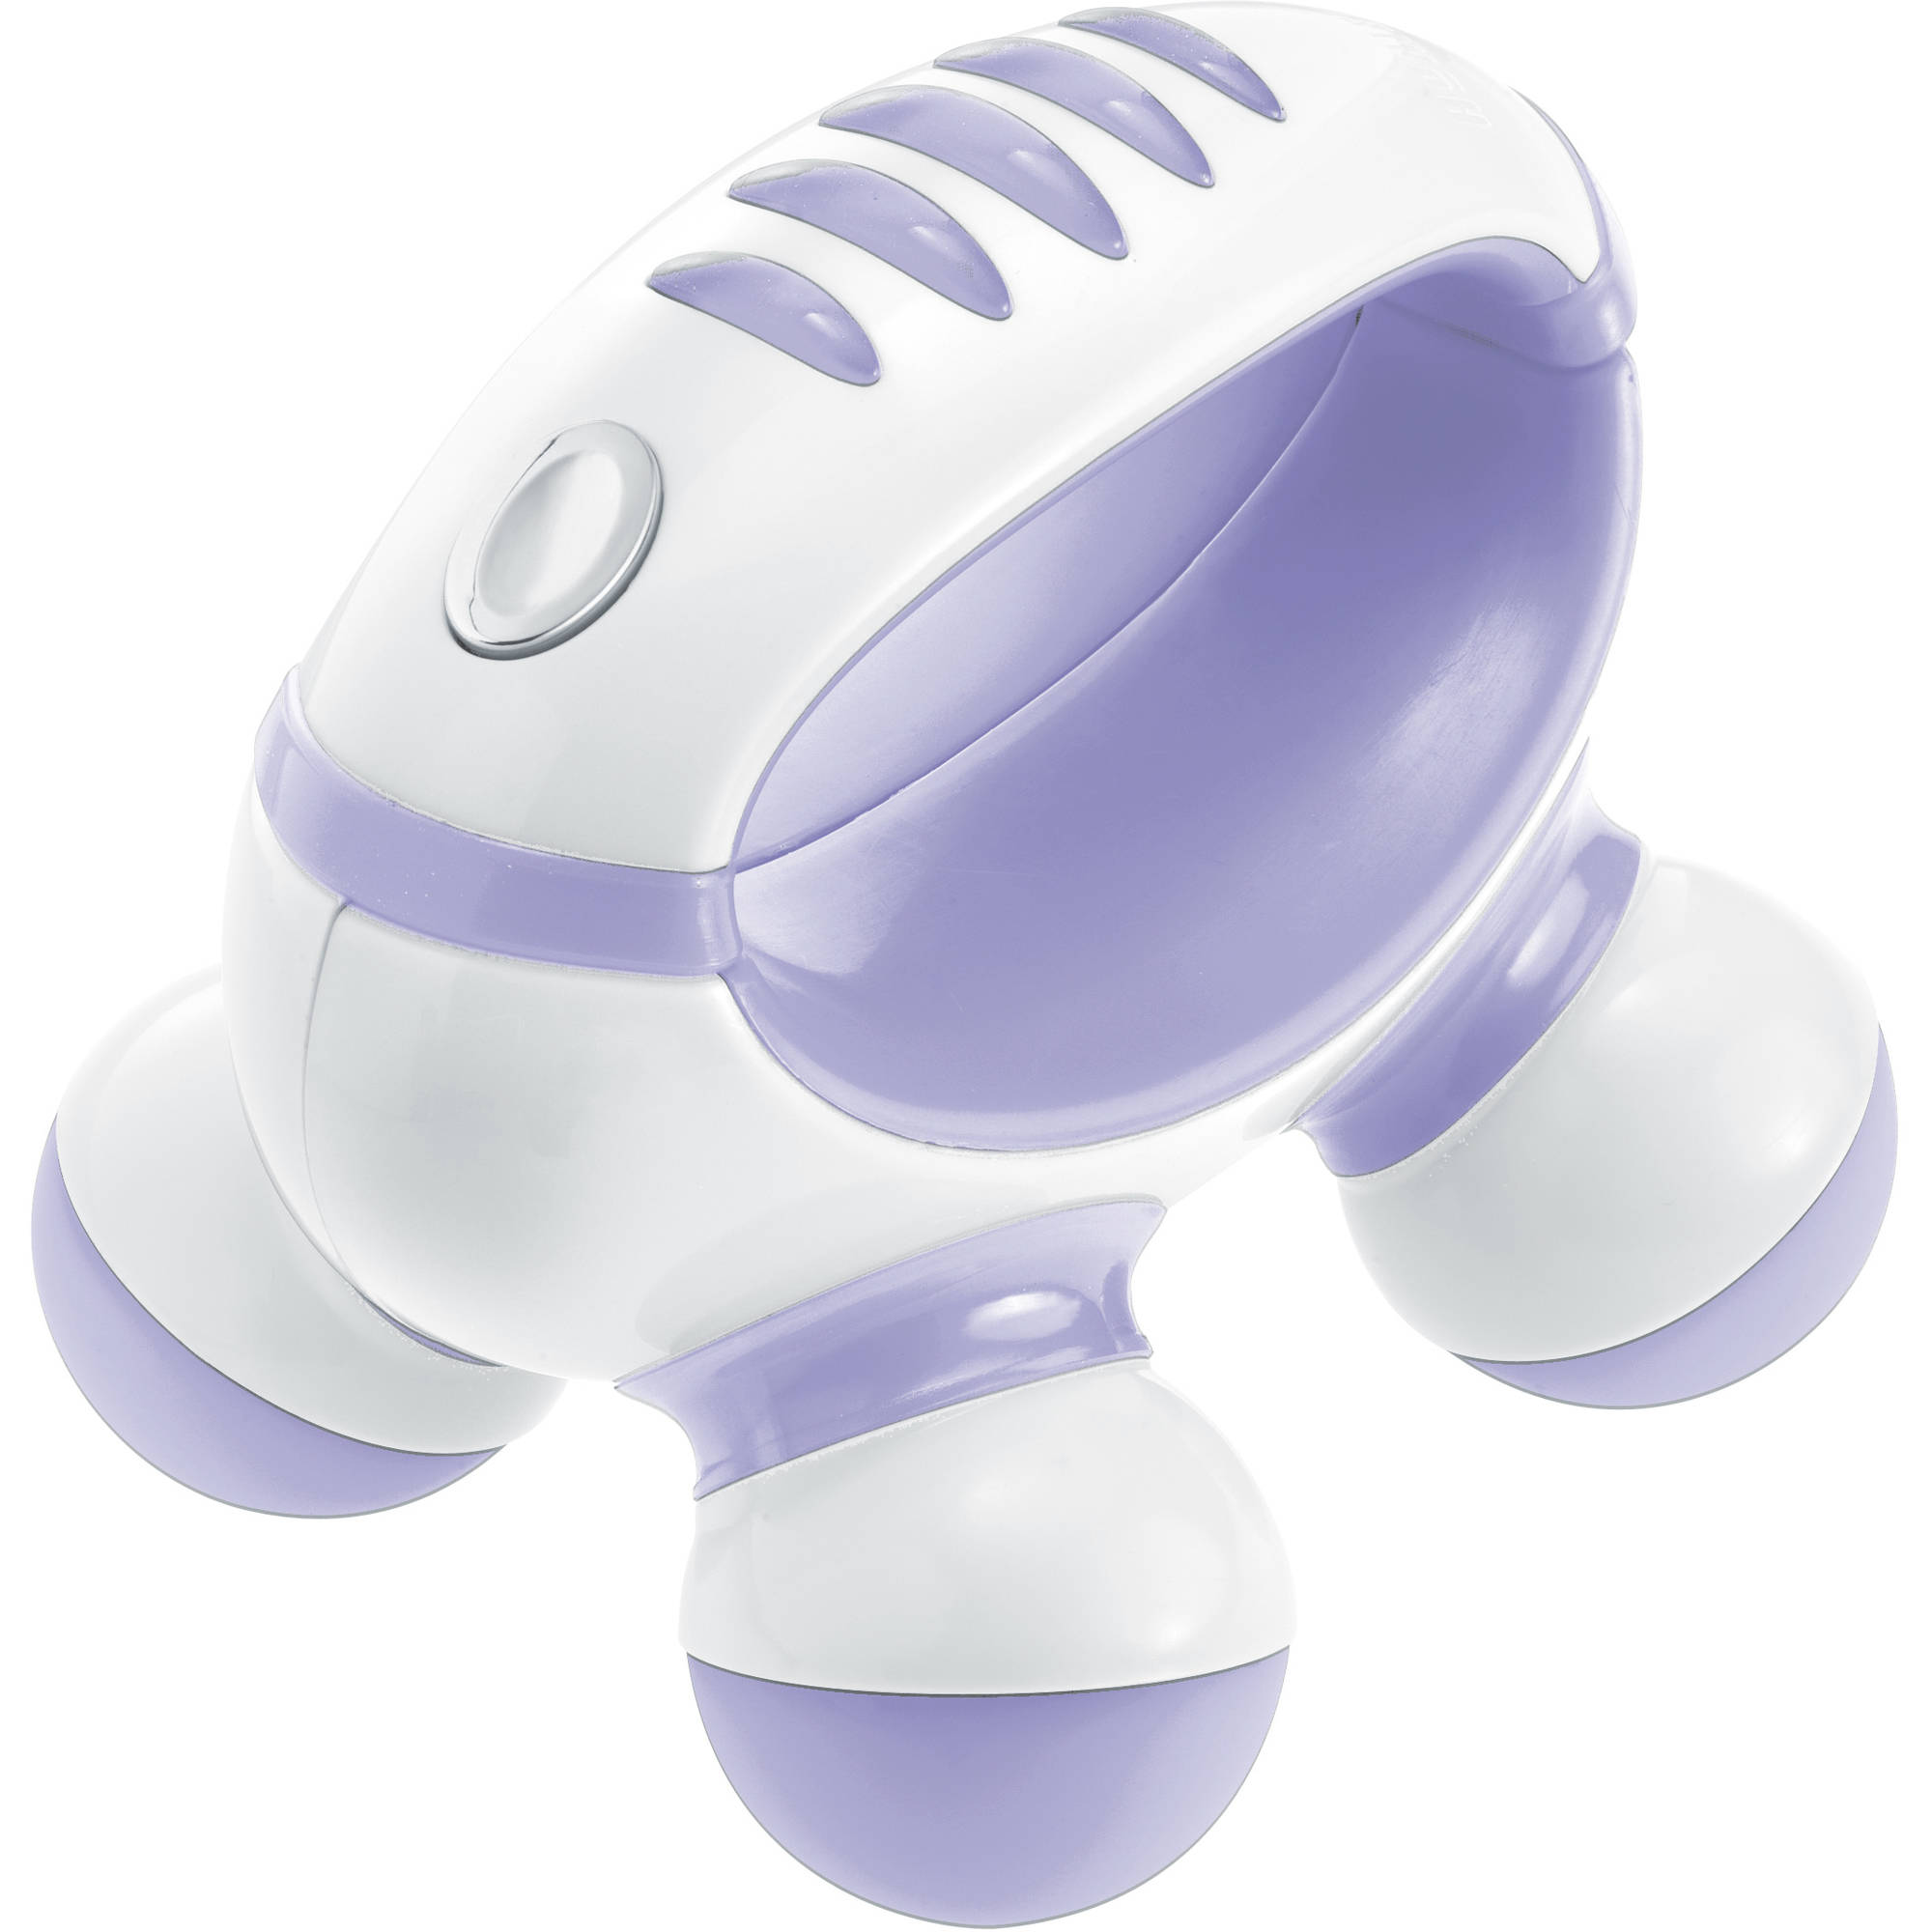 HoMedics Therapy Handheld Personal Mini Massager, Blue